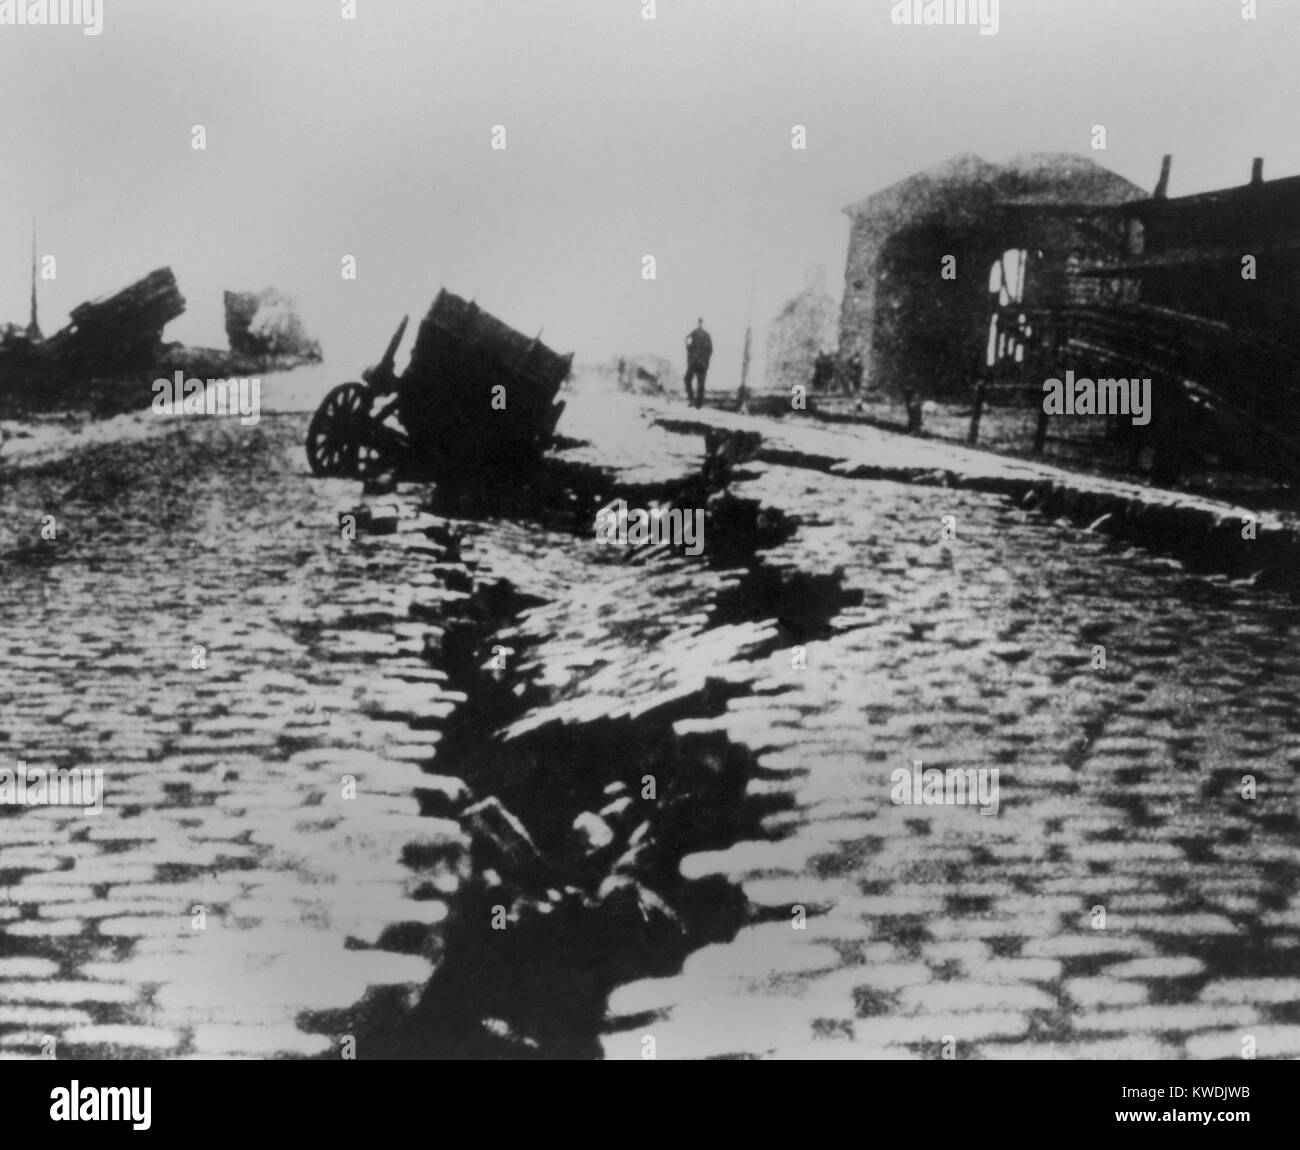 Fissure and sink in East Street near Ferry Building after the San Francisco Earthquake, 1906. A carriage fell into - Stock Image